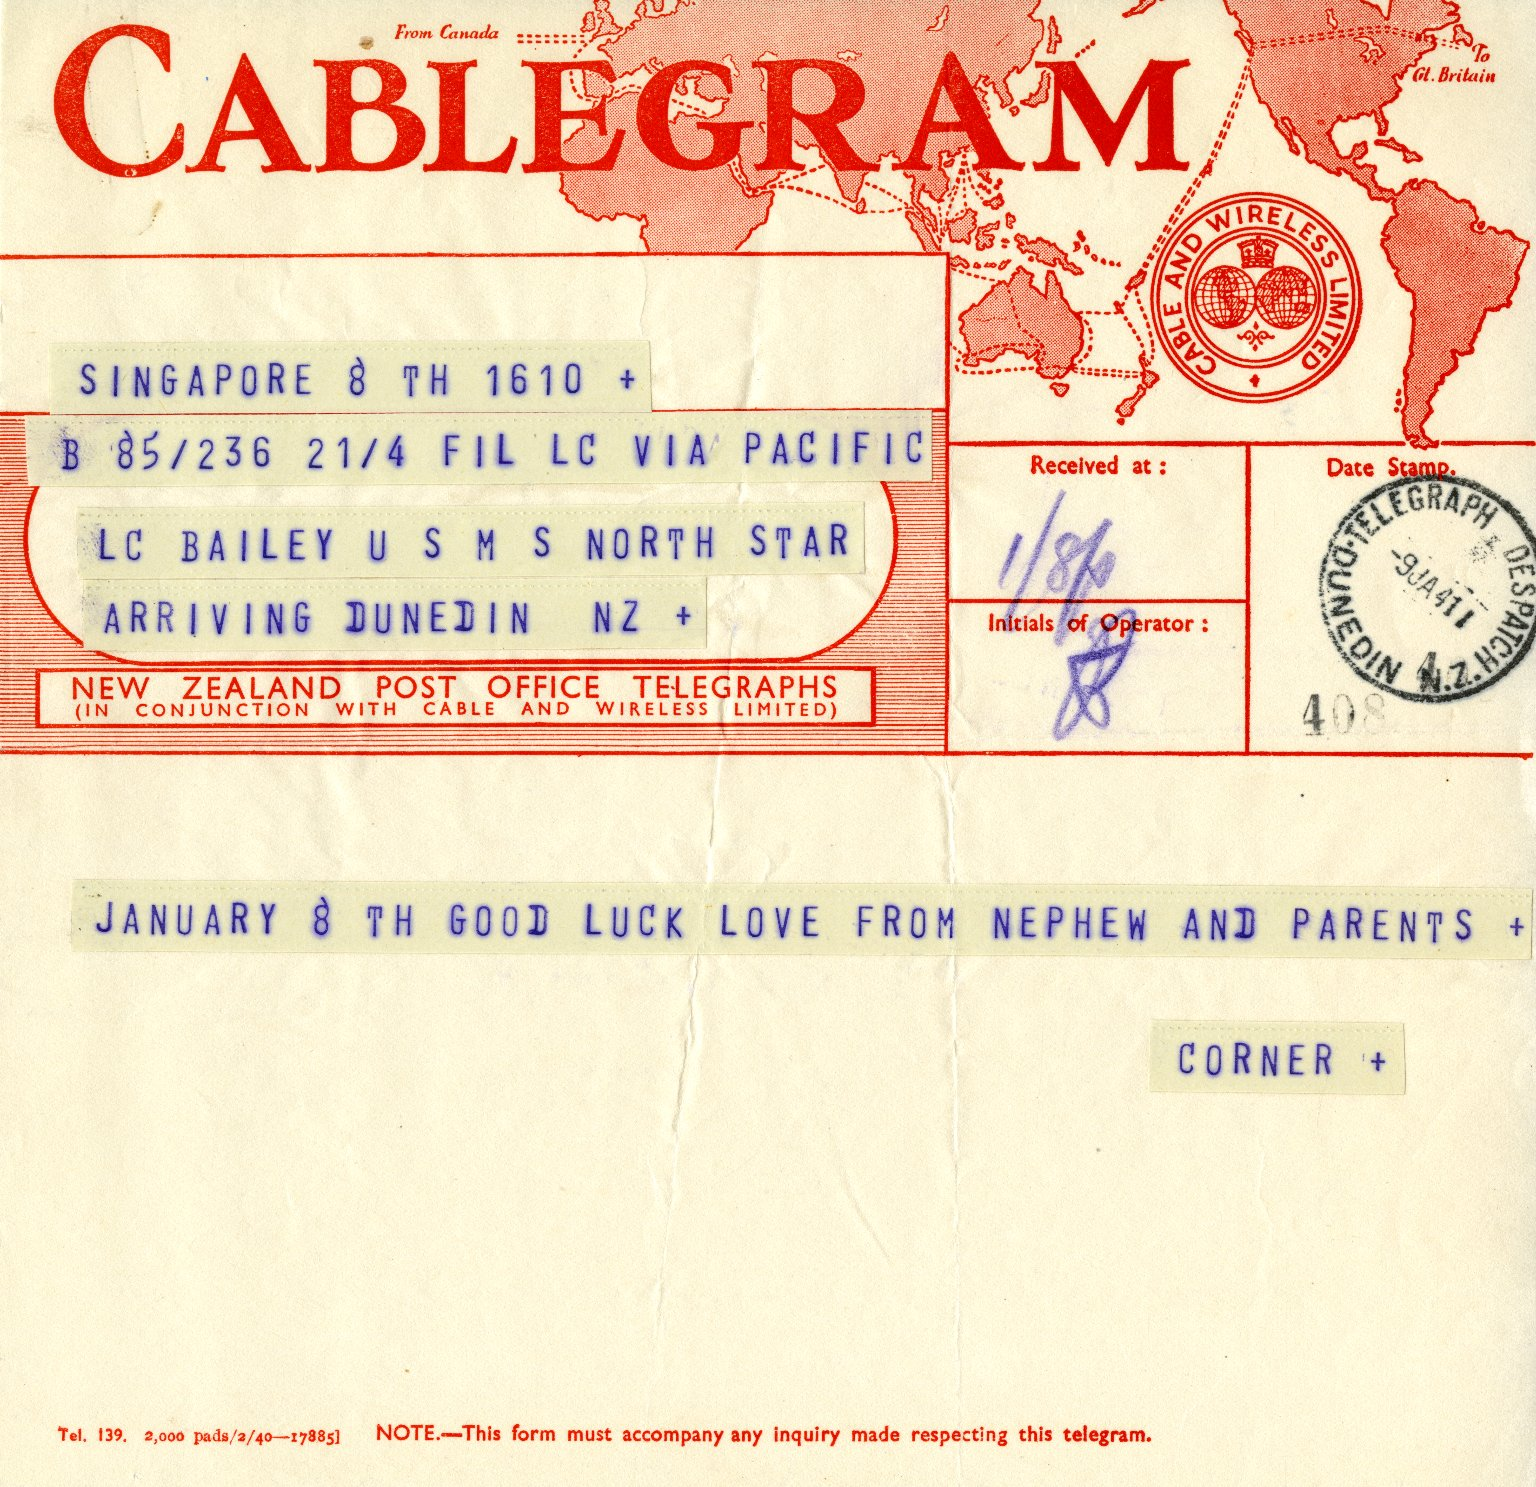 Cablegram to D.K. Bailey from his parents and nephew